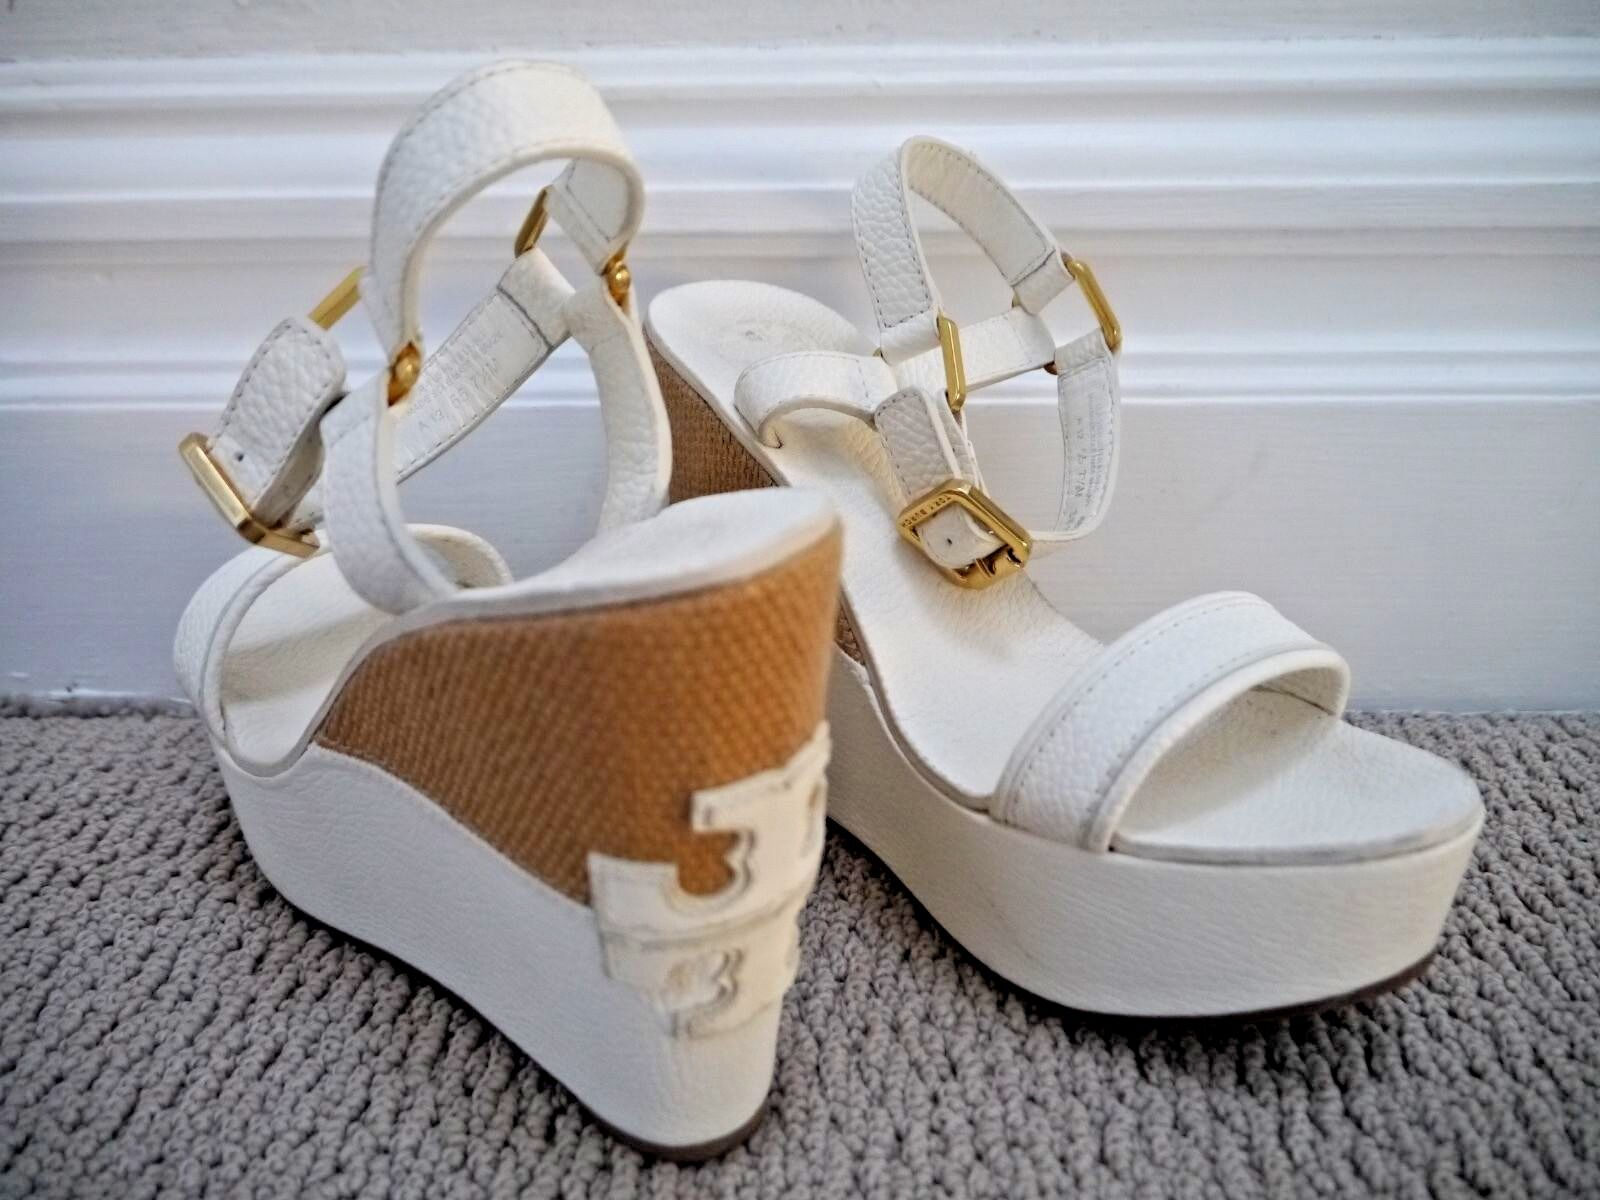 TORY BURCH $325 Carlee ivory leather logo detail wedge sandals 7.5 WORN ONCE